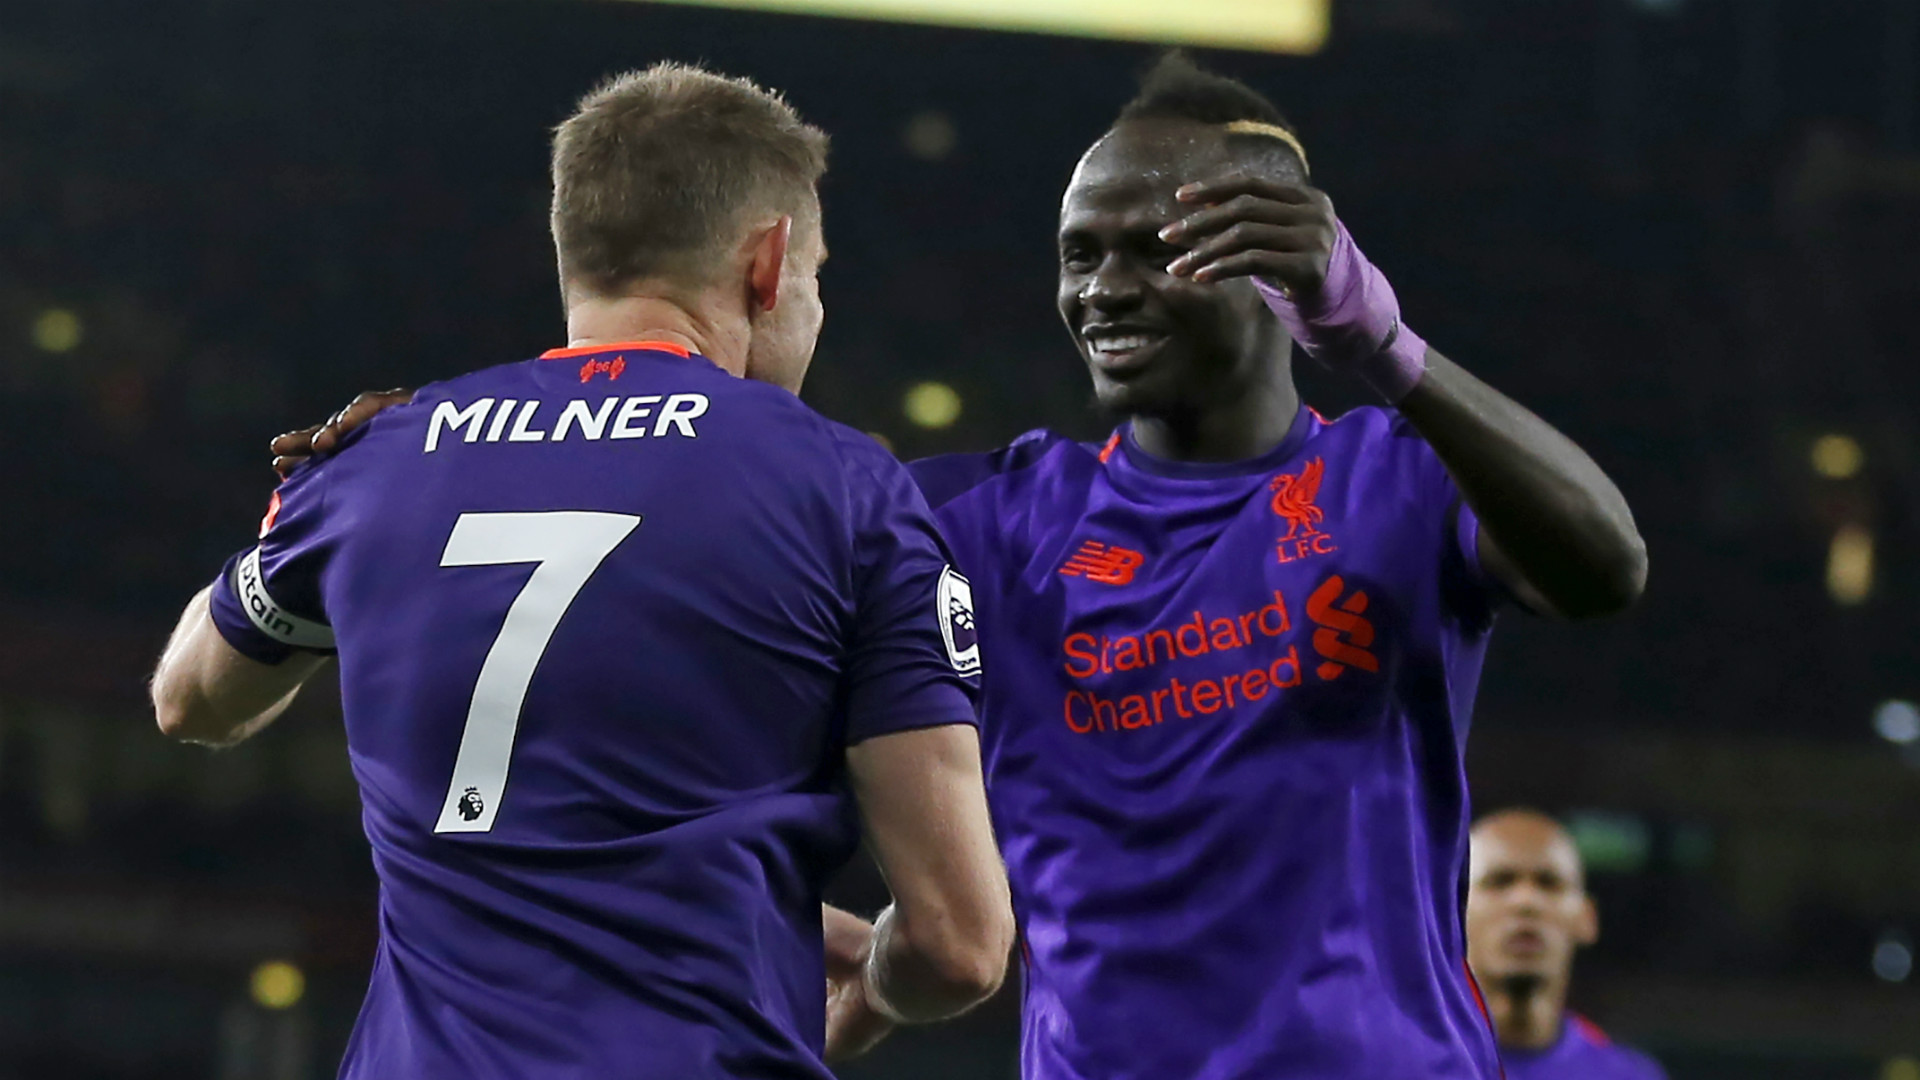 James Milner Sadio Mane Liverpool 2018-19